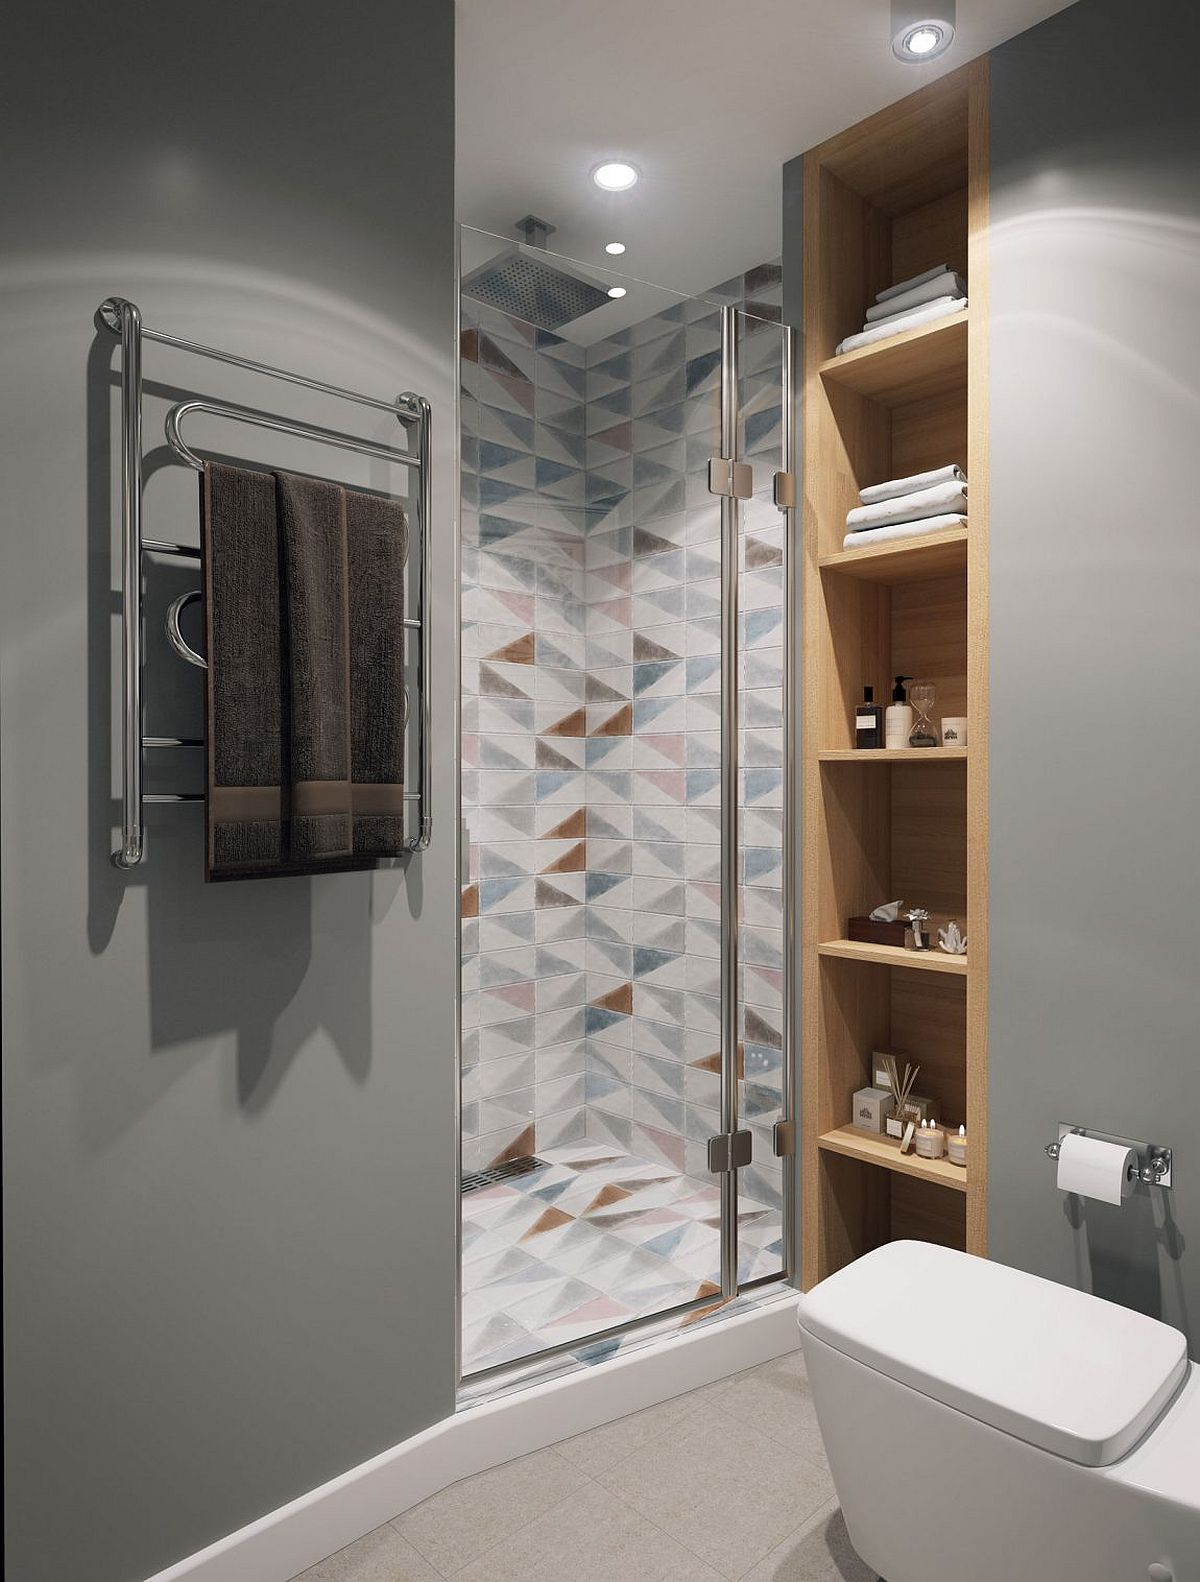 Tiles in the shower area provide visual and geometric contrast